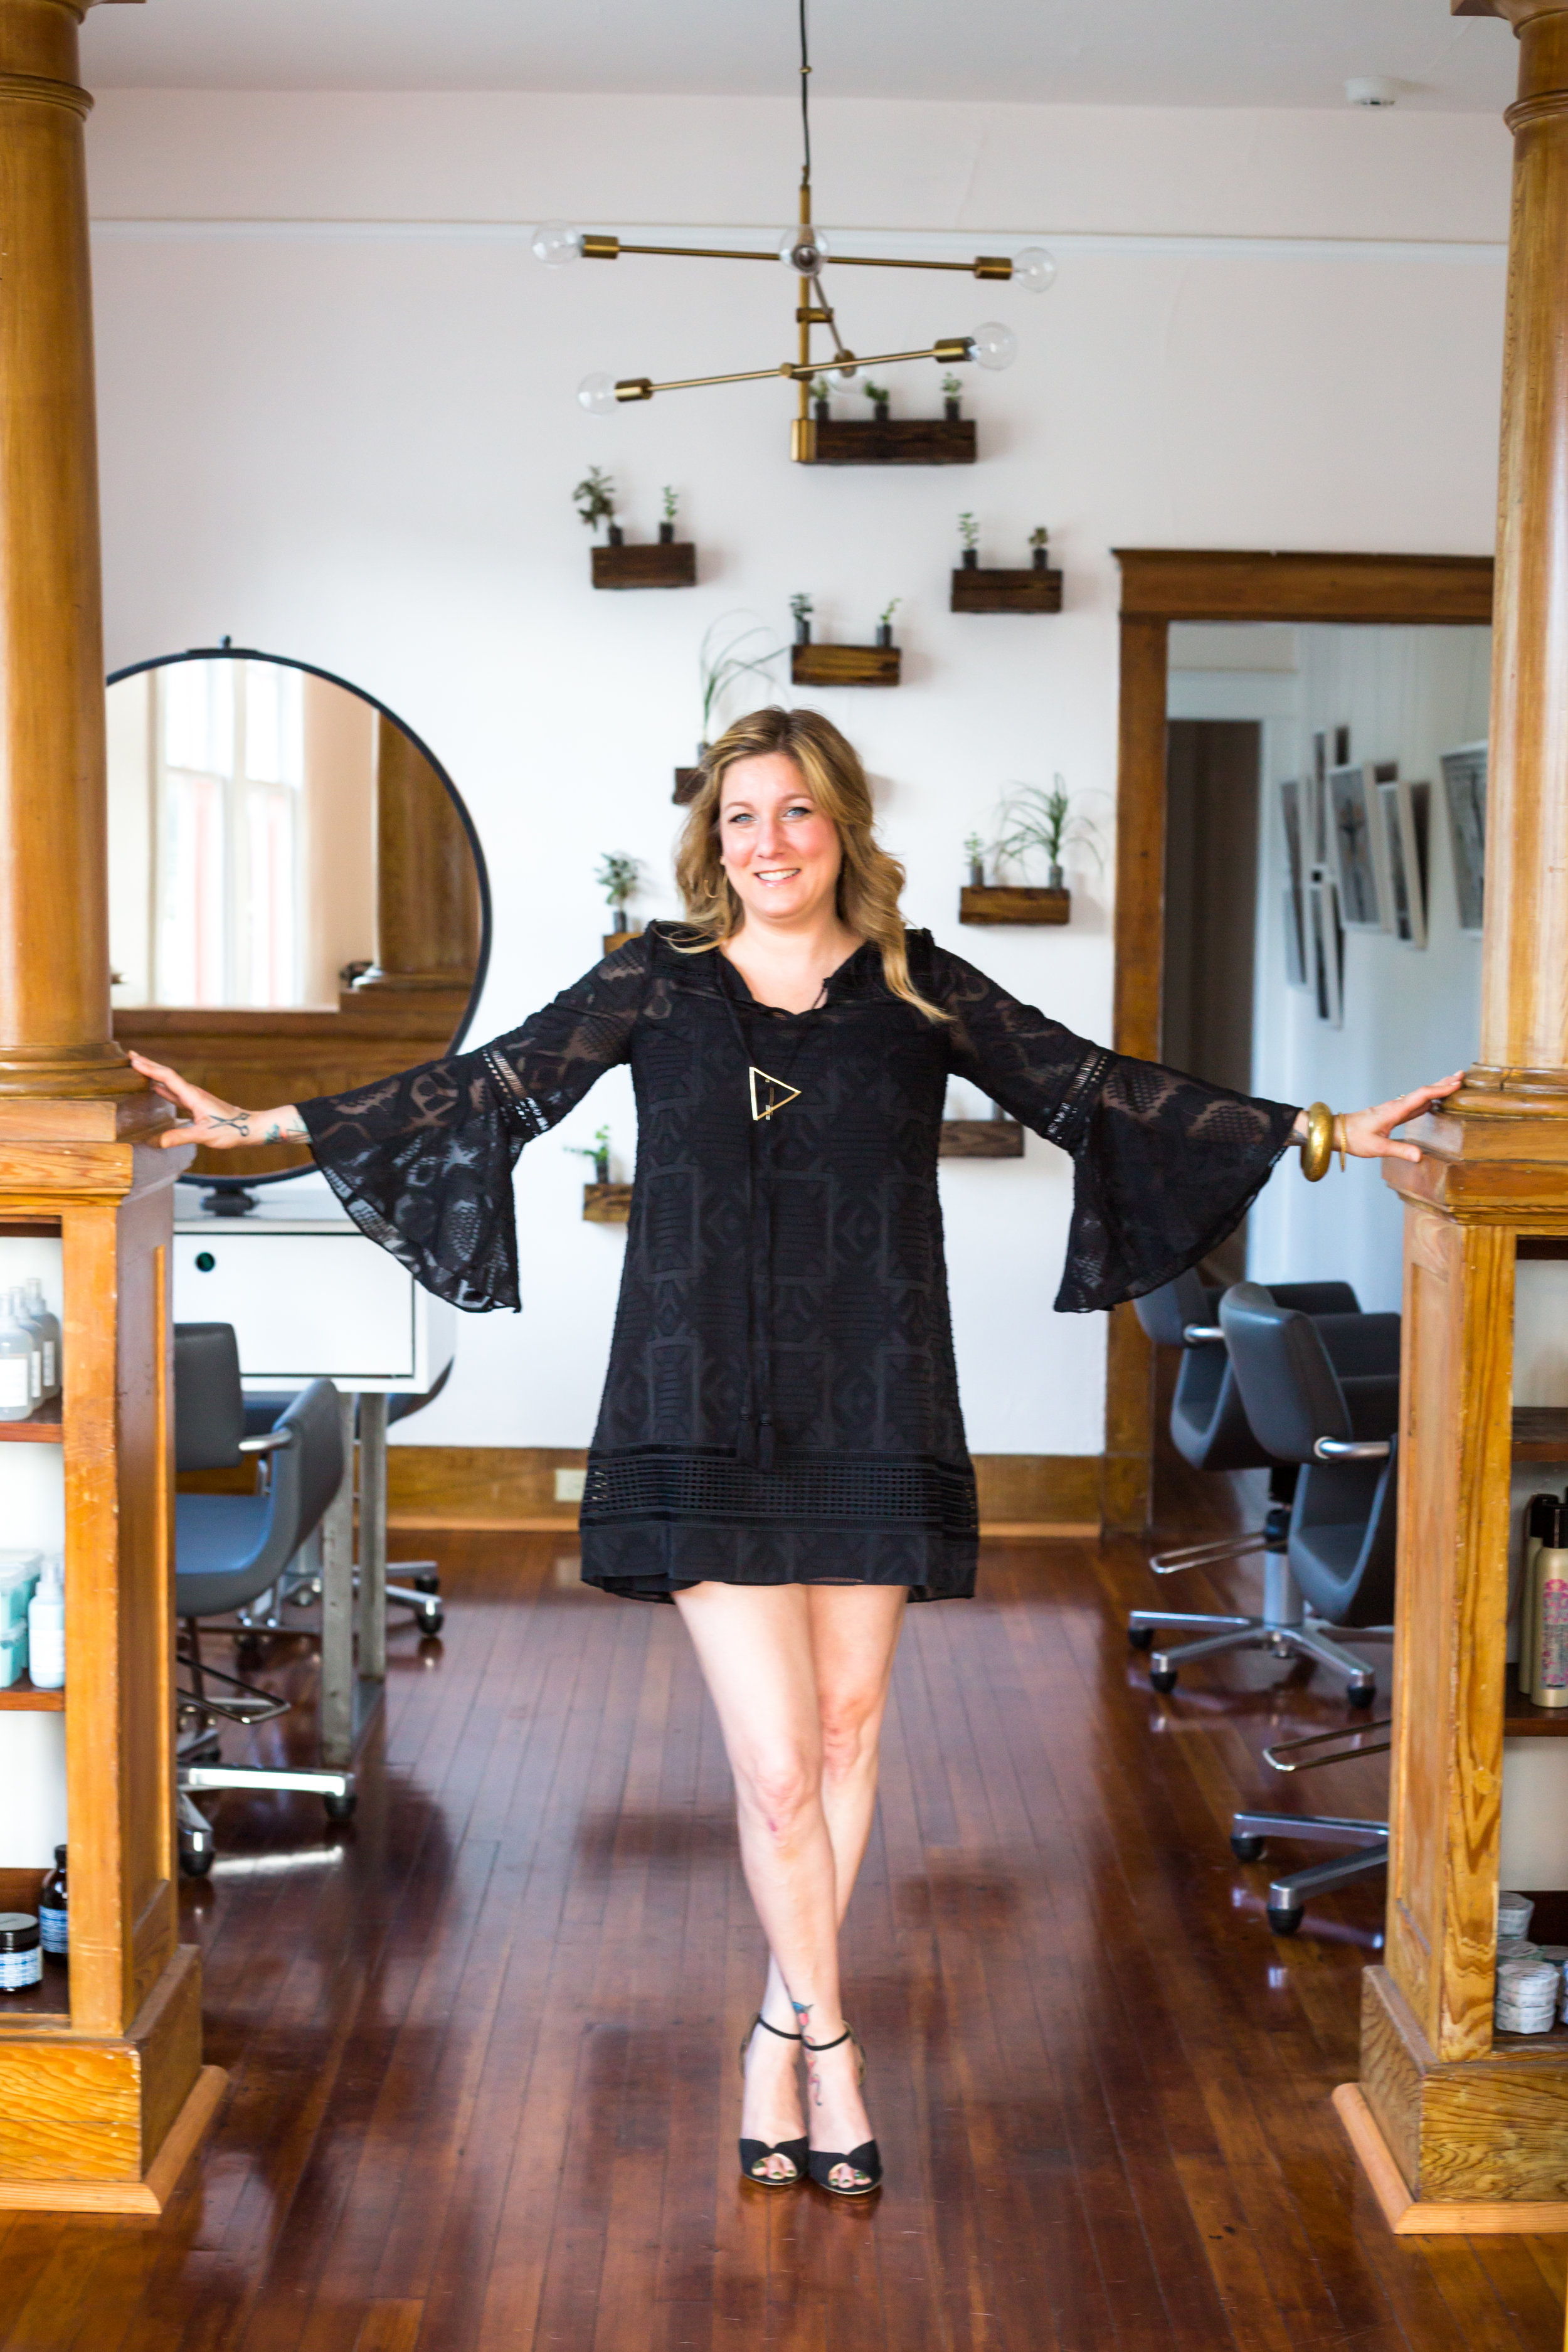 "Andrea A. Hoover - Owner | Stylist | Colorist  Andrea opened Sweet Olive Salon with her husband Richard in January of 2017. She has over 20 years experience as a professional cosmetologist in the New Orleans area. Andrea has cut, colored and styled hair at many high-end hair salons over the years. With this valuable experience, she created a professional hair salon that is also warm and welcoming to all, Sweet Olive Salon. We are a neighborhood boutique hair and skincare salon serving the greater New Orleans area. We are also a proud member of Green Circle Salons, which means we recycle 90% of our salon waste and keep it out of landfills and waterways.  Andrea's professional touch and big heart will bring your hair vision to life while creating a color and style that is just as unique as you are. Call for your free consultation today!  Pets: Cat named June.  Review:  ""Andrea really knows cut and color! I am so happy with my new do. The salon is so relaxed and amazing they will even offer you a nice refreshing glass of wine. Thank you to the crew at Sweet Olive for being so lovely. Can't wait for my next appointment!"" -   Leah Schroeder"